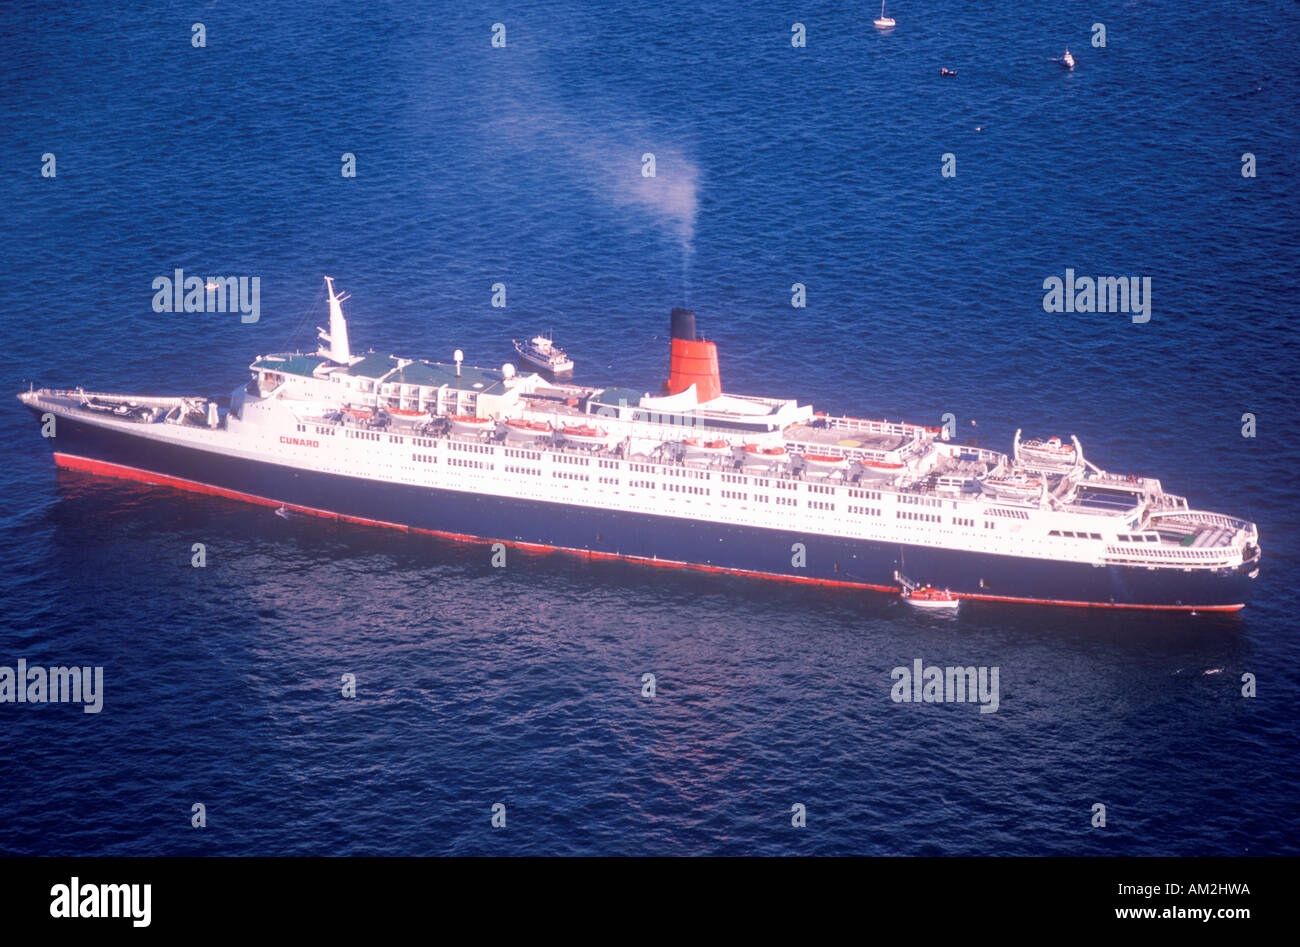 The QE2 sails into New York Harbor for the Statue of Liberty centennial celebration July 4 1986 - Stock Image